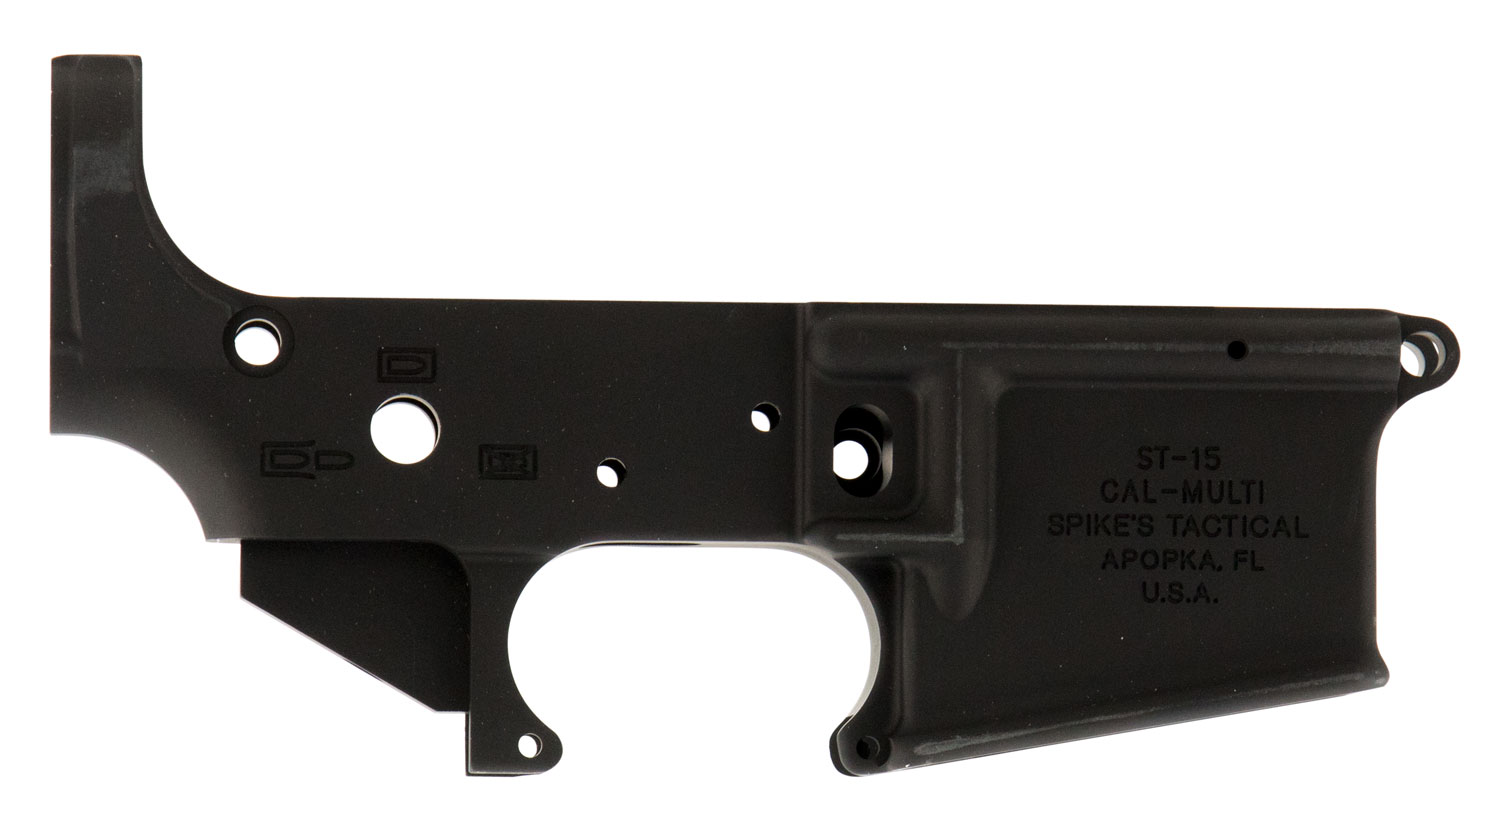 Spikes STLS045 Stripped Lower  Multi-Caliber Black Hardcoat Anodized 7075 T6 Aluminum